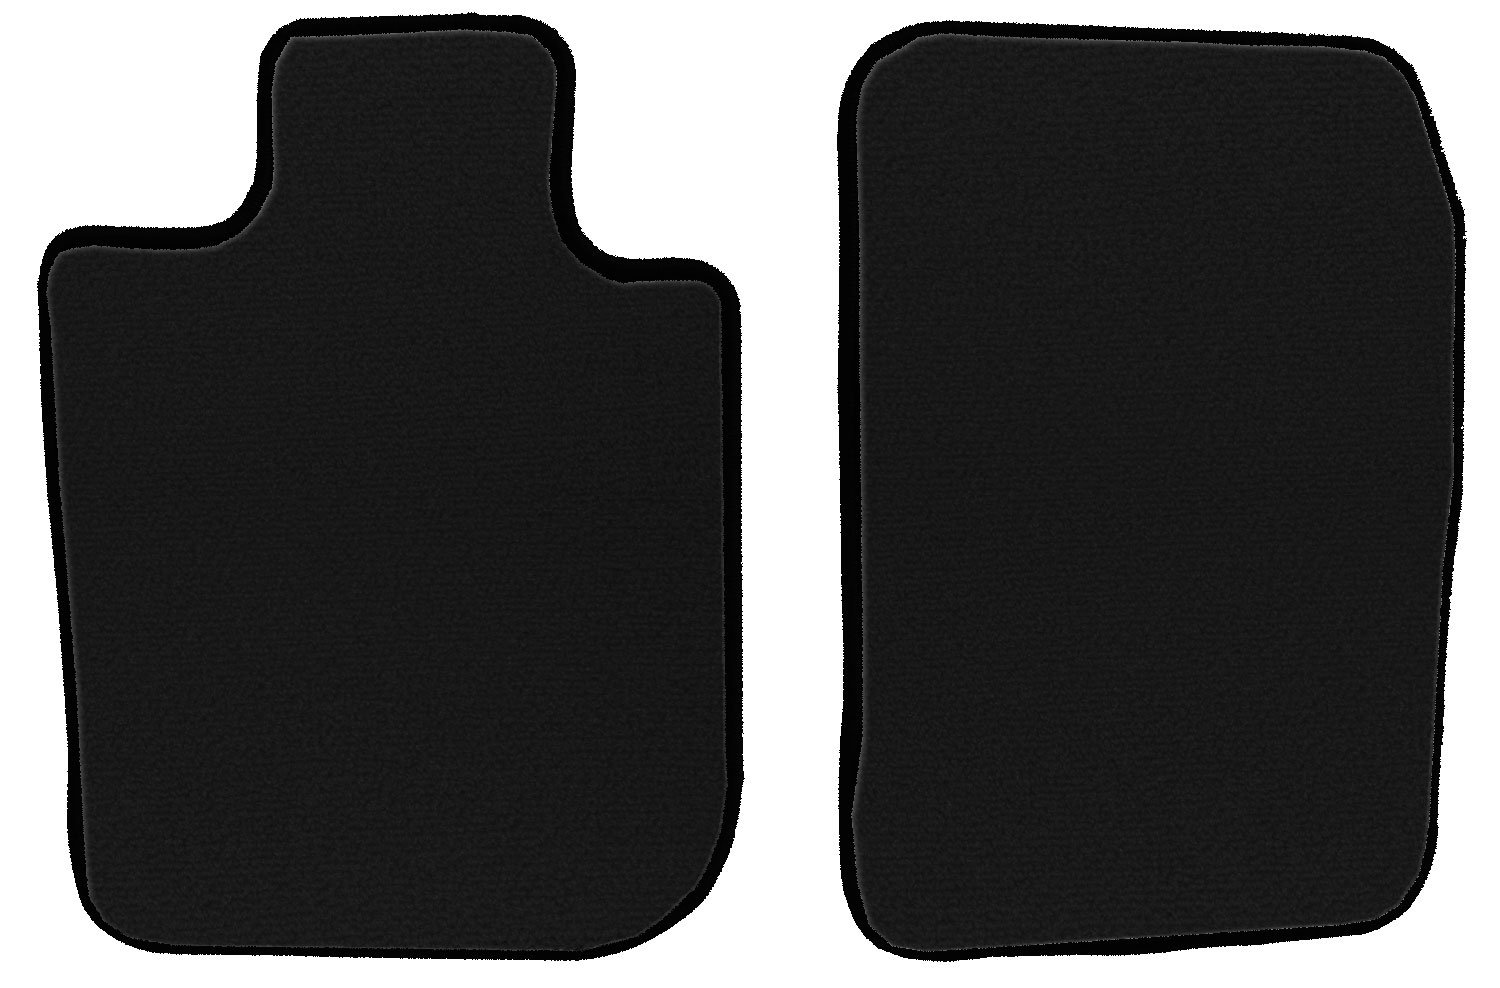 1993 GGBAILEY D2840A-F1A-BK-LP Custom Fit Automotive Carpet Floor Mats for 1992 1994 1995 Dodge Grand Caravan Black Loop Driver /& Passenger